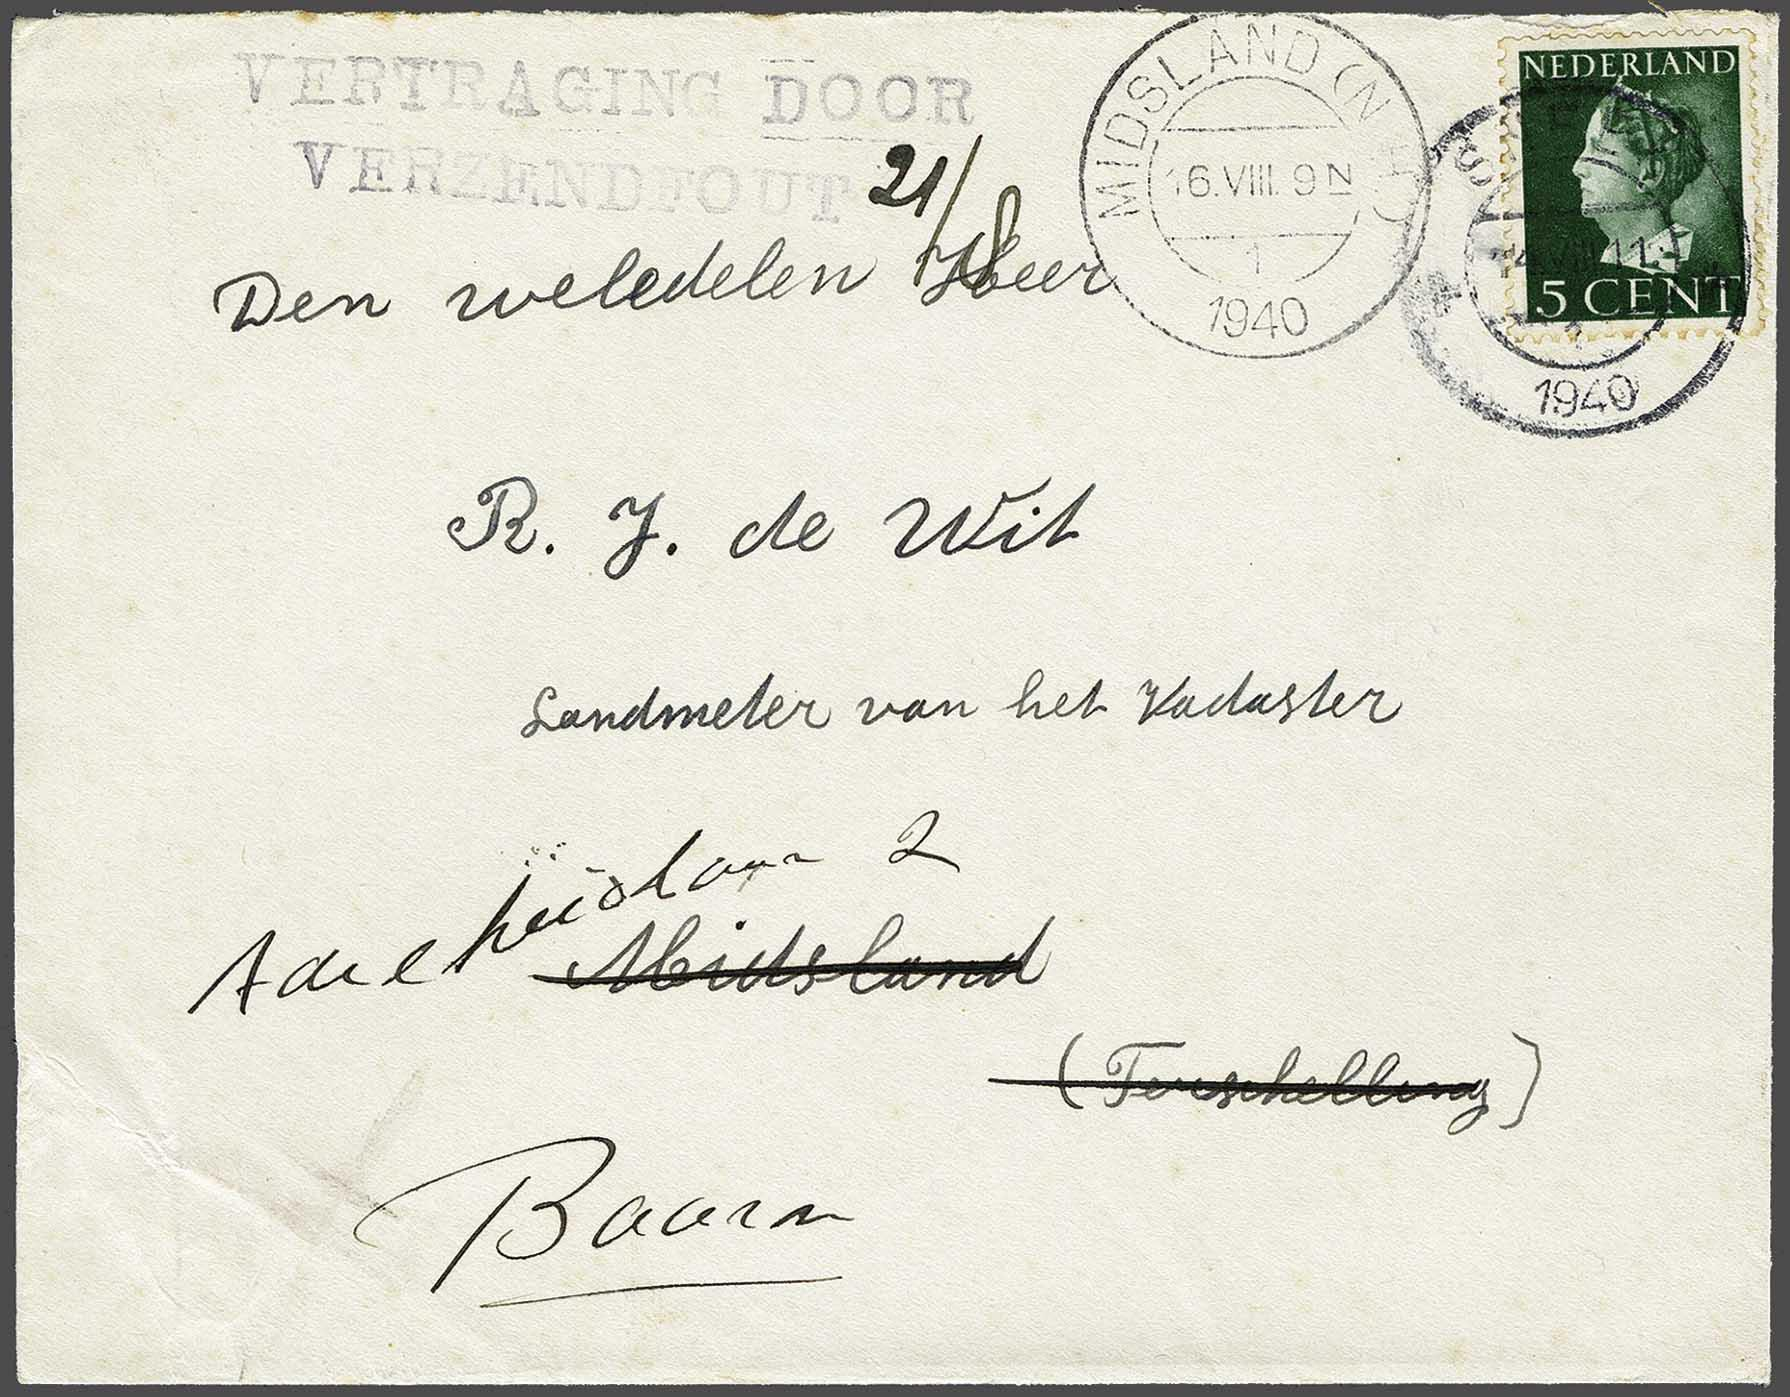 Lot 2816 - Netherlands and former colonies Netherlands -  Corinphila Veilingen Auction 244 -Netherlands and former colonies, WW2 Postal History, Bosnia, German and British colonies, Egypt. - Day 3